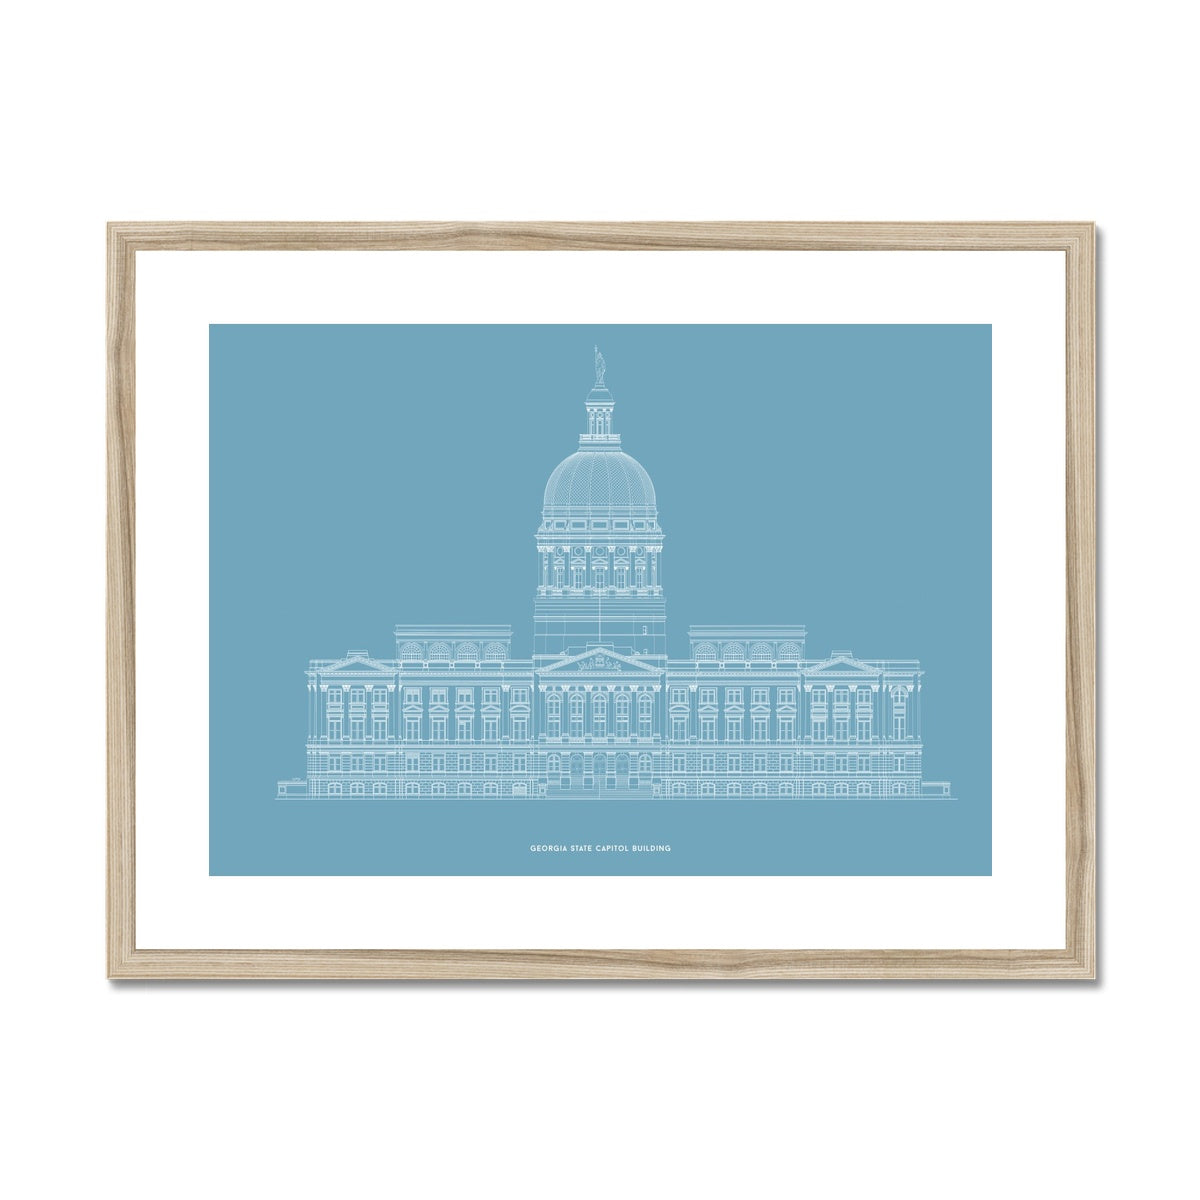 The Georgia State Capitol Building - West Elevation - Blue -  Framed & Mounted Print